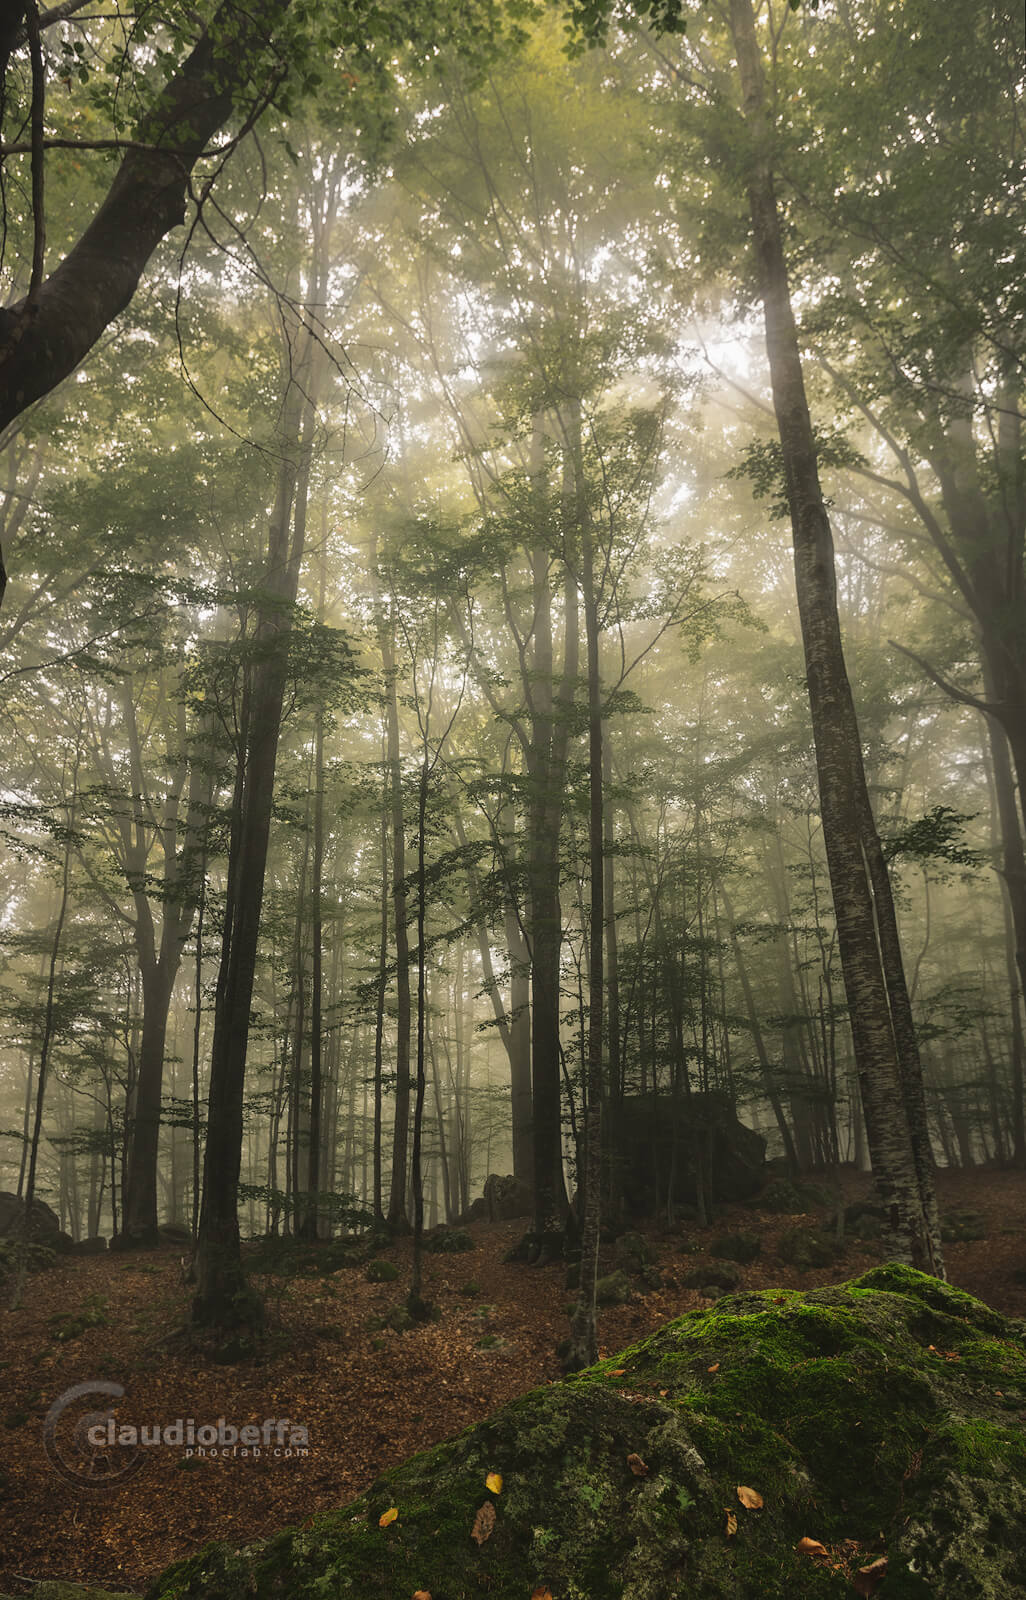 Forest, Mist, Fog, Light, Green, Mout Amiata, Ancient, Italy, Tuscany